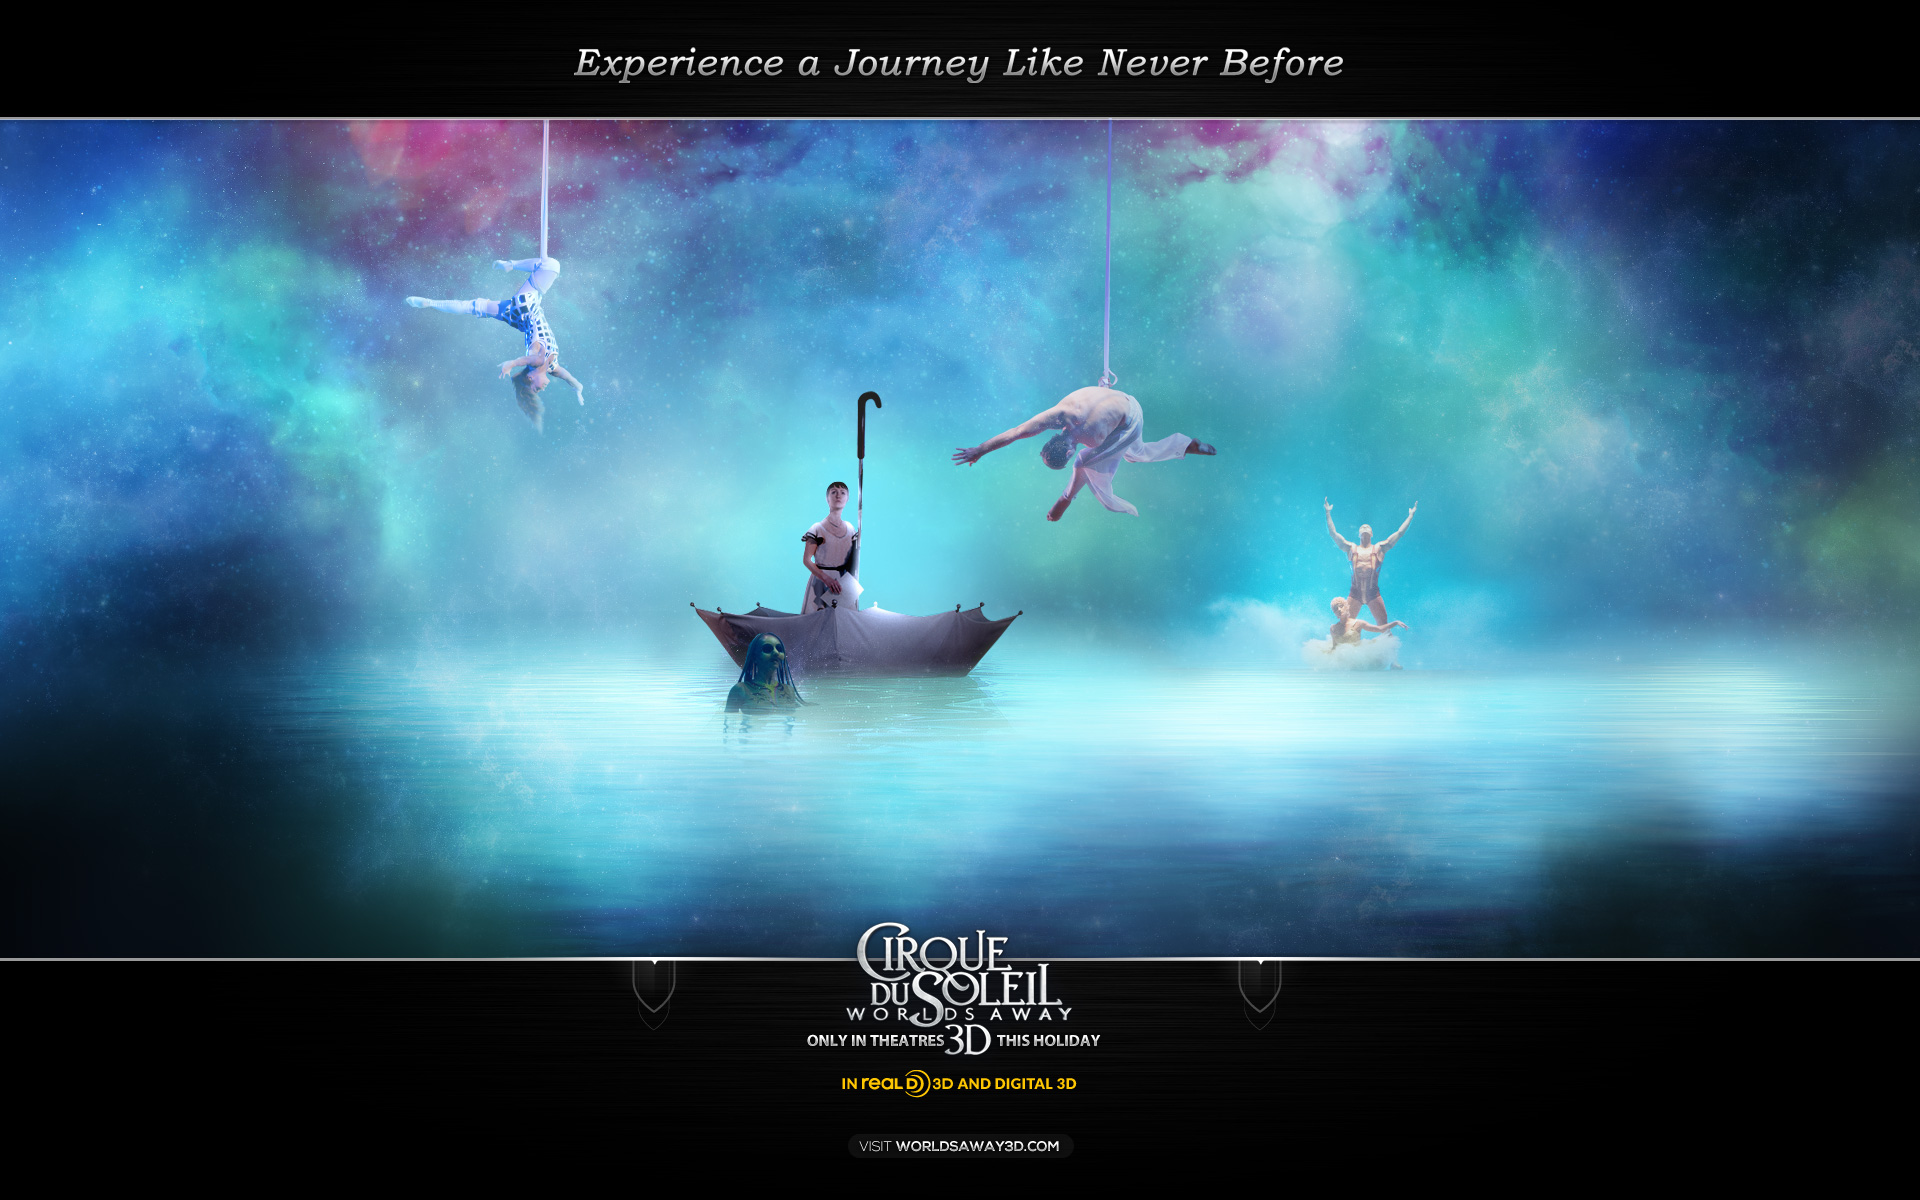 Cirque Du Soleil Worlds Away HD Wallpapers Backgrounds   Wallpaper 1920x1200